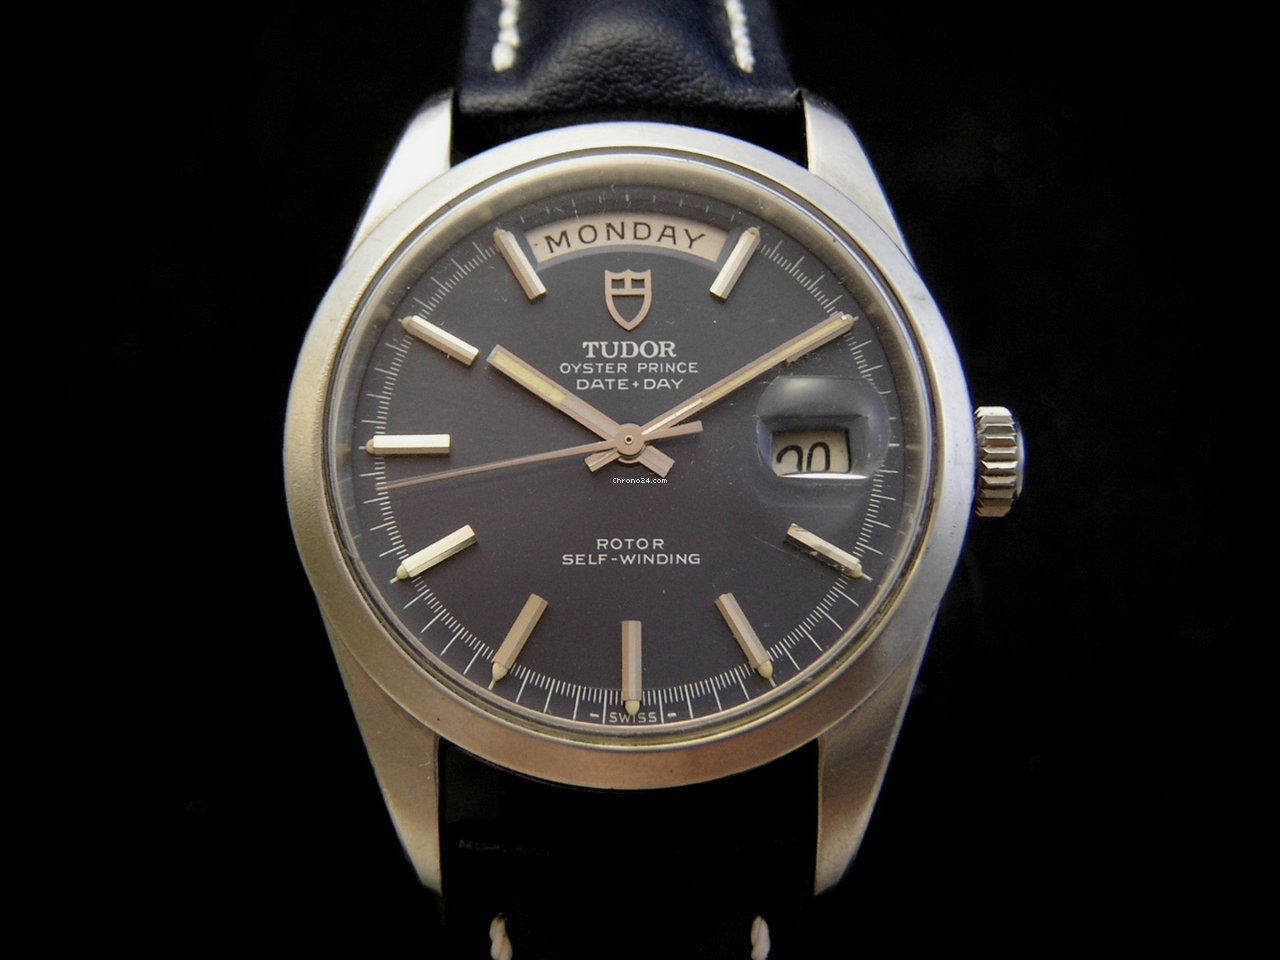 977f5a770f Tudor Rare Vintage Oyster Prince Date+Day 69 sold on Chrono24